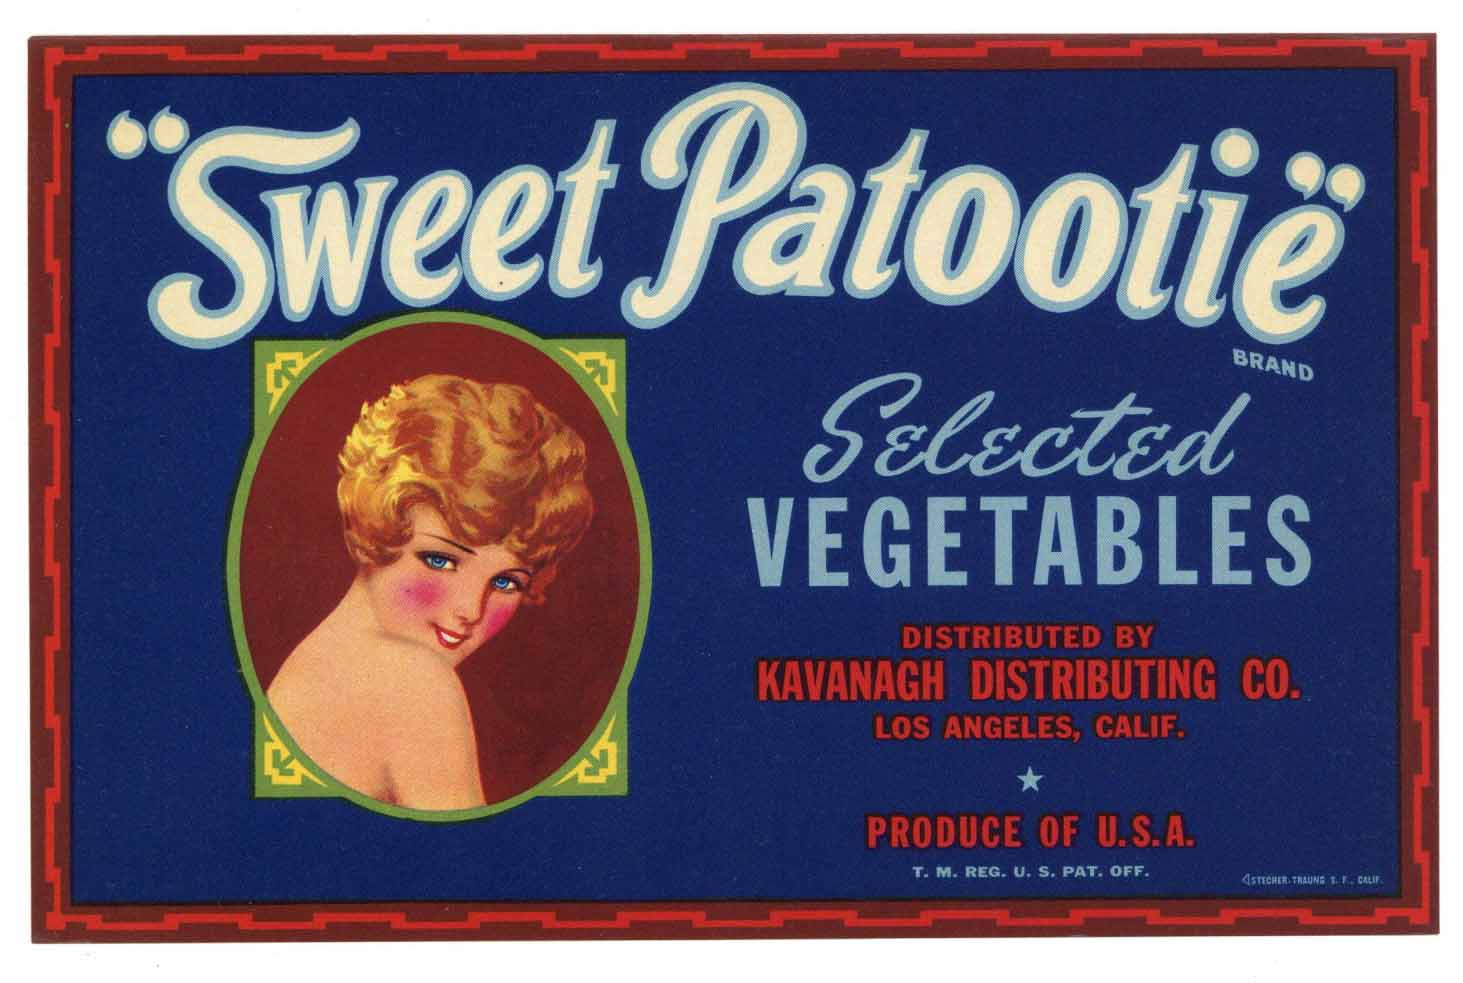 Sweet Patootie Brand Vintage Vegetable Crate Label, m